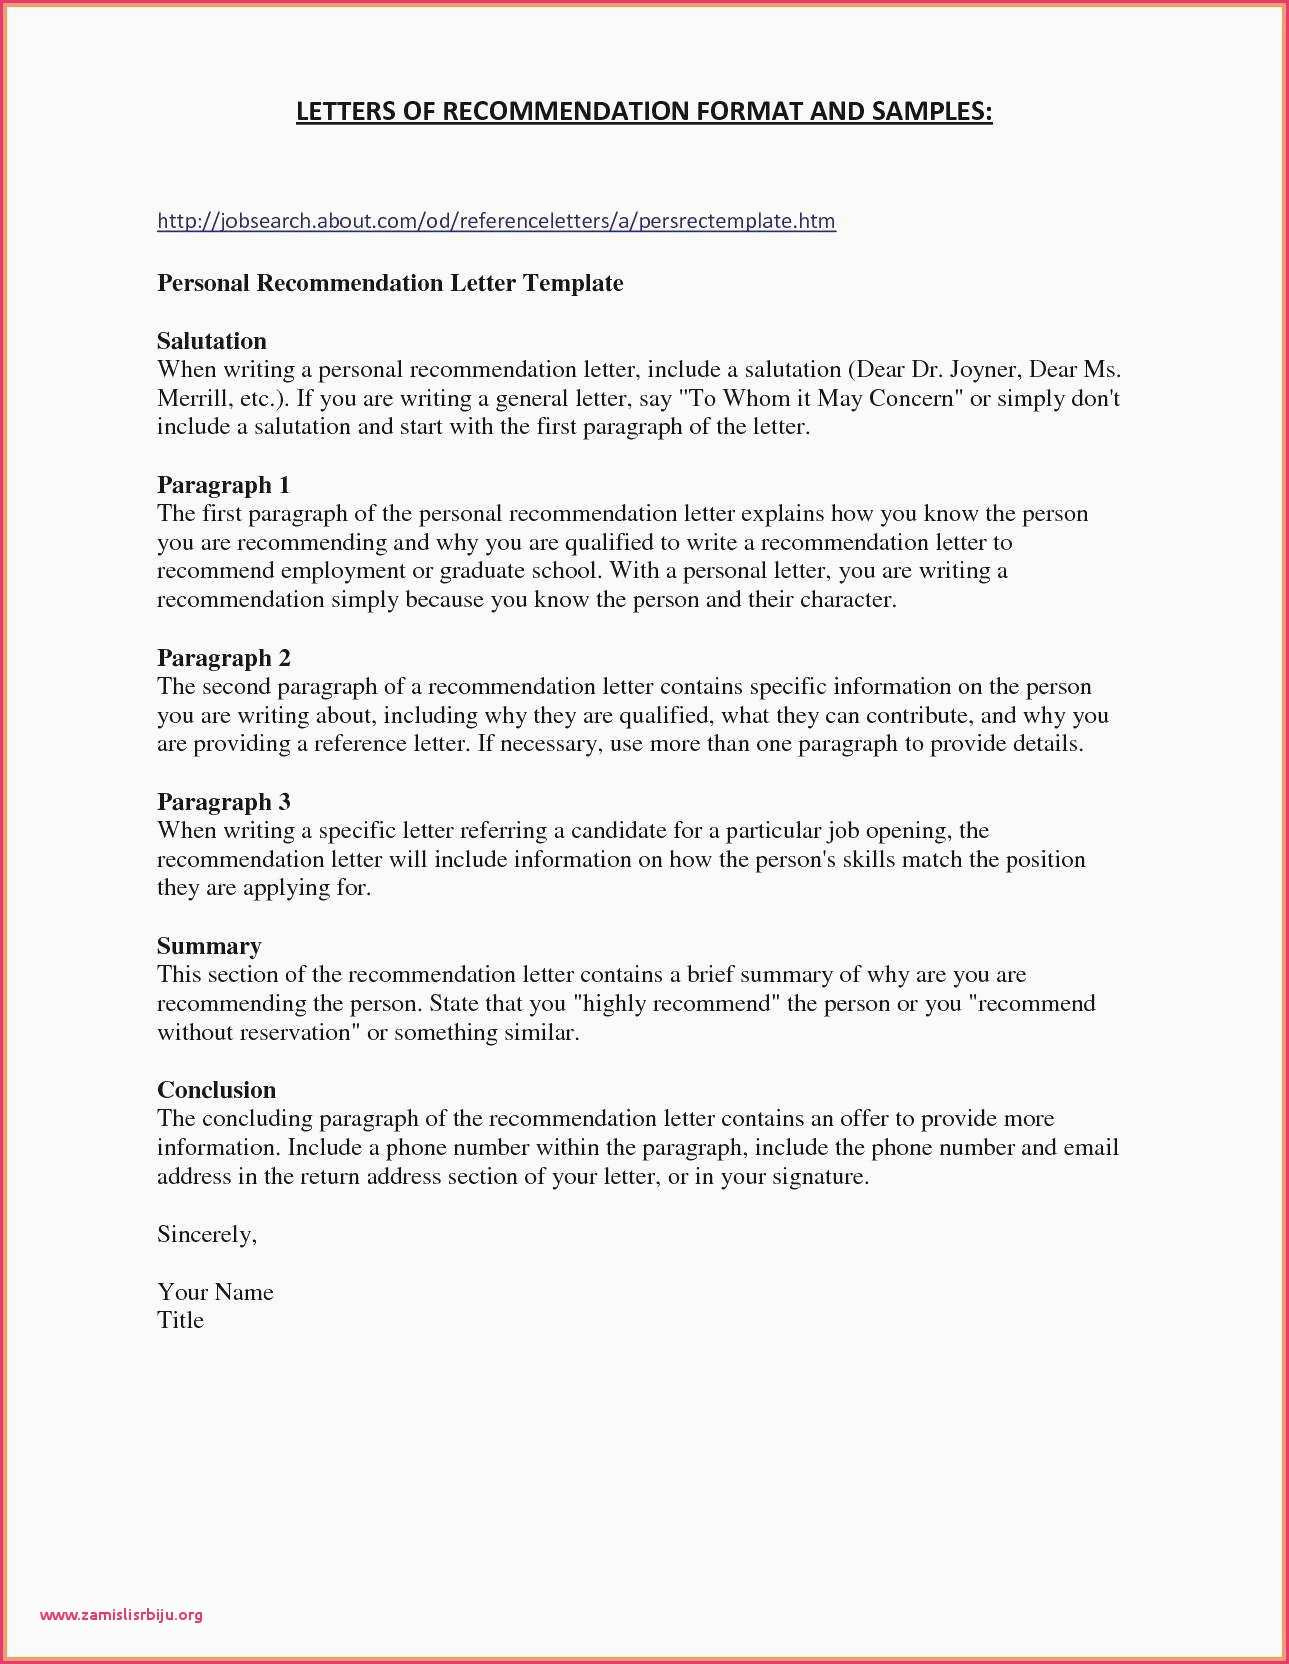 Is My Perfect Resume Free - My Perfect Resume Cover Letter Elegant My Perfect Resume Phone